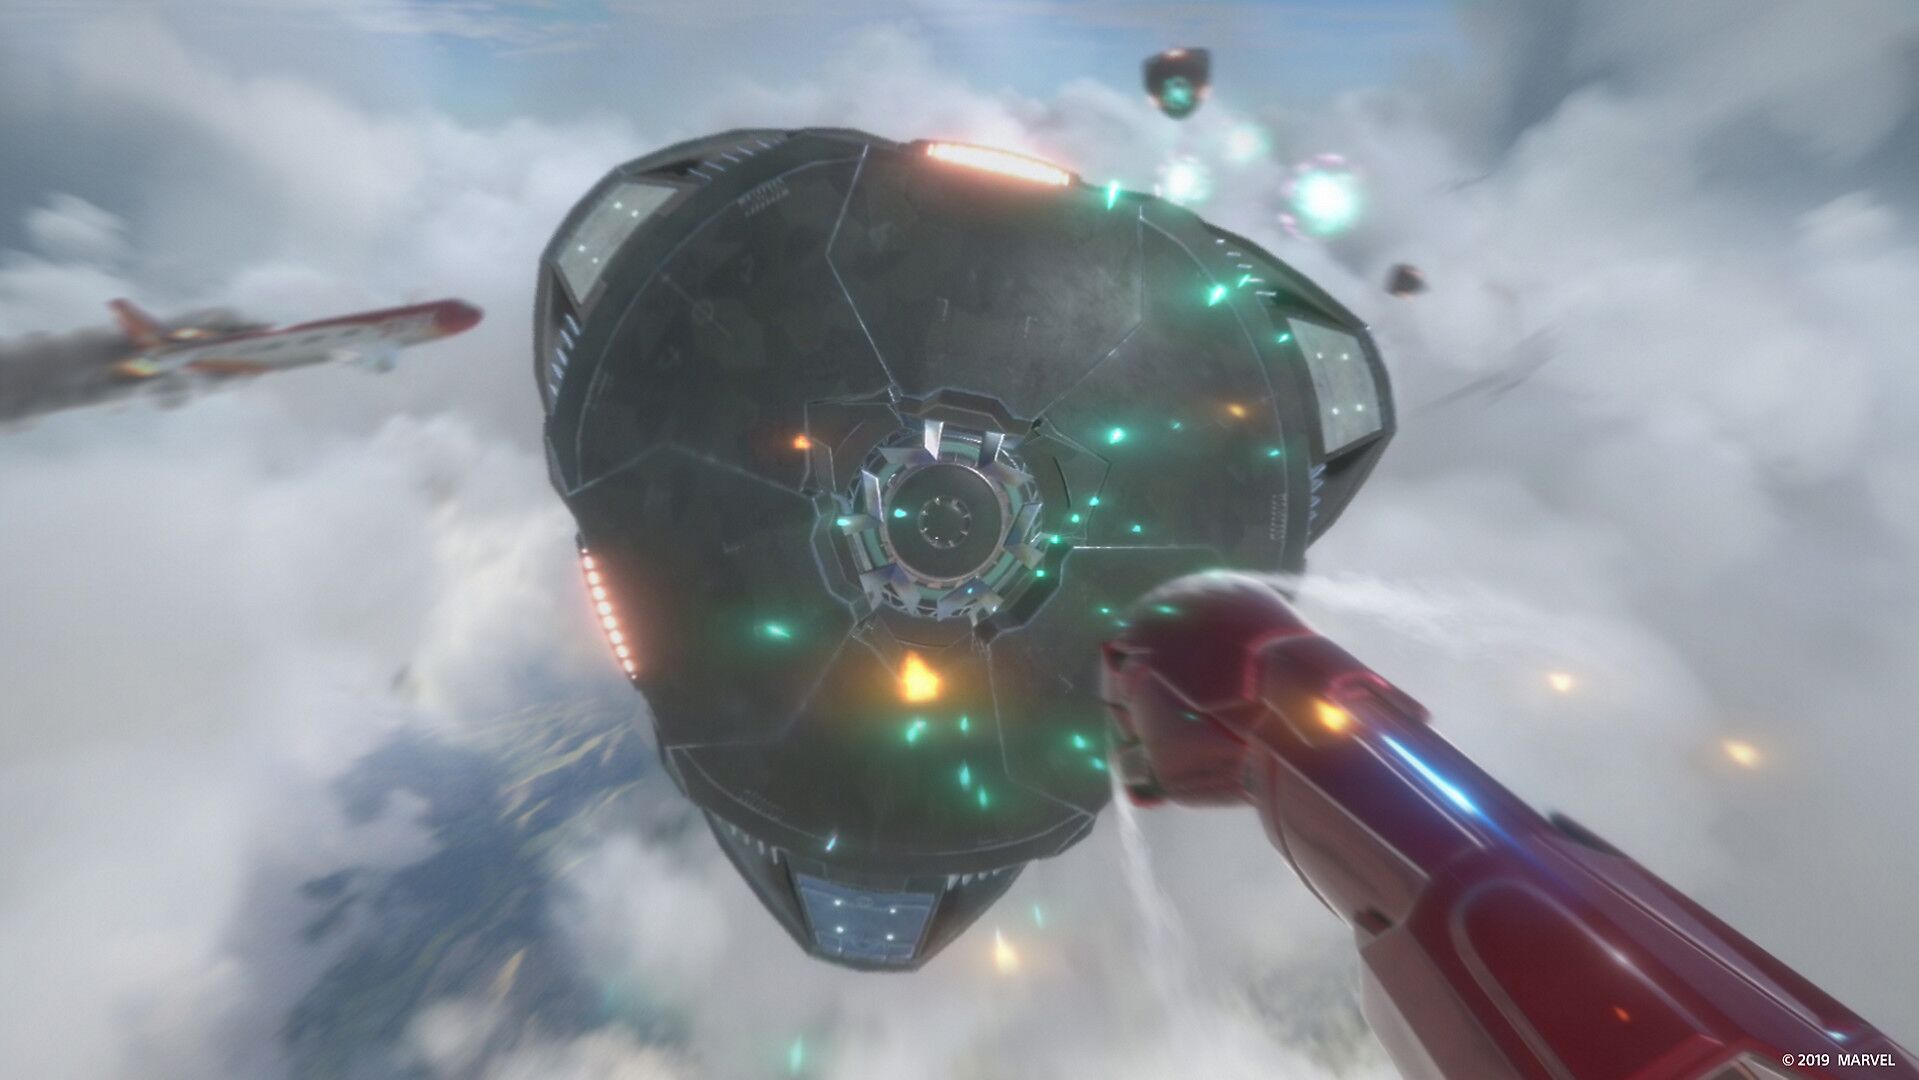 Marvel's Iron Man VR will now take flight in May after delay - App Trigger